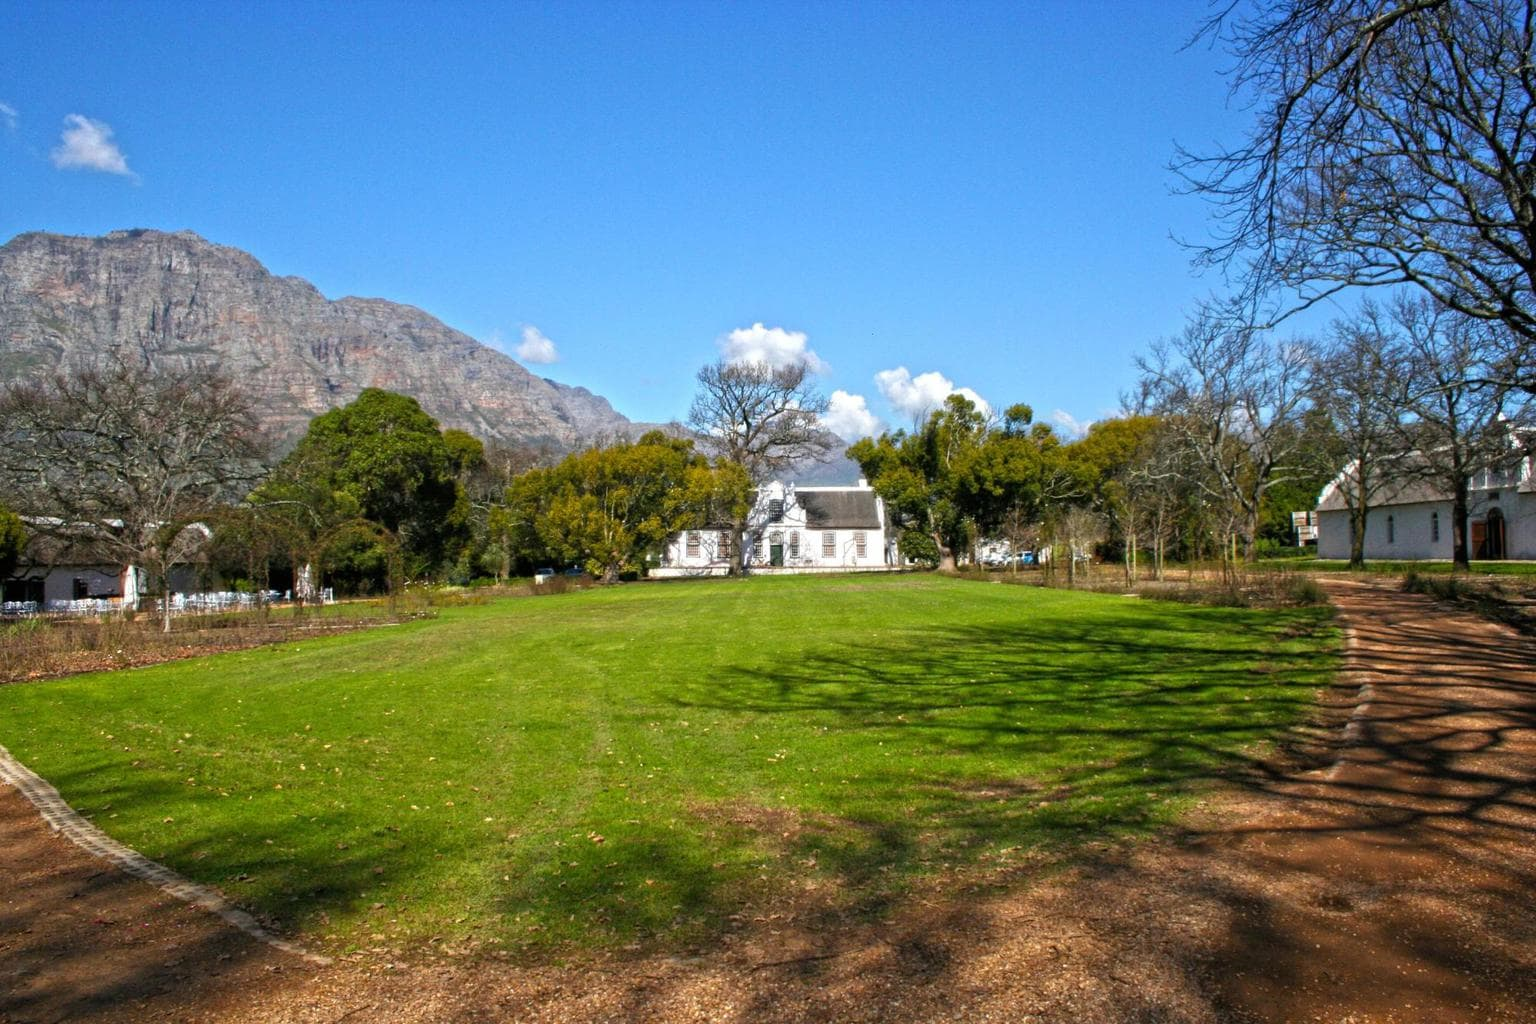 The old grounds at Boschendal